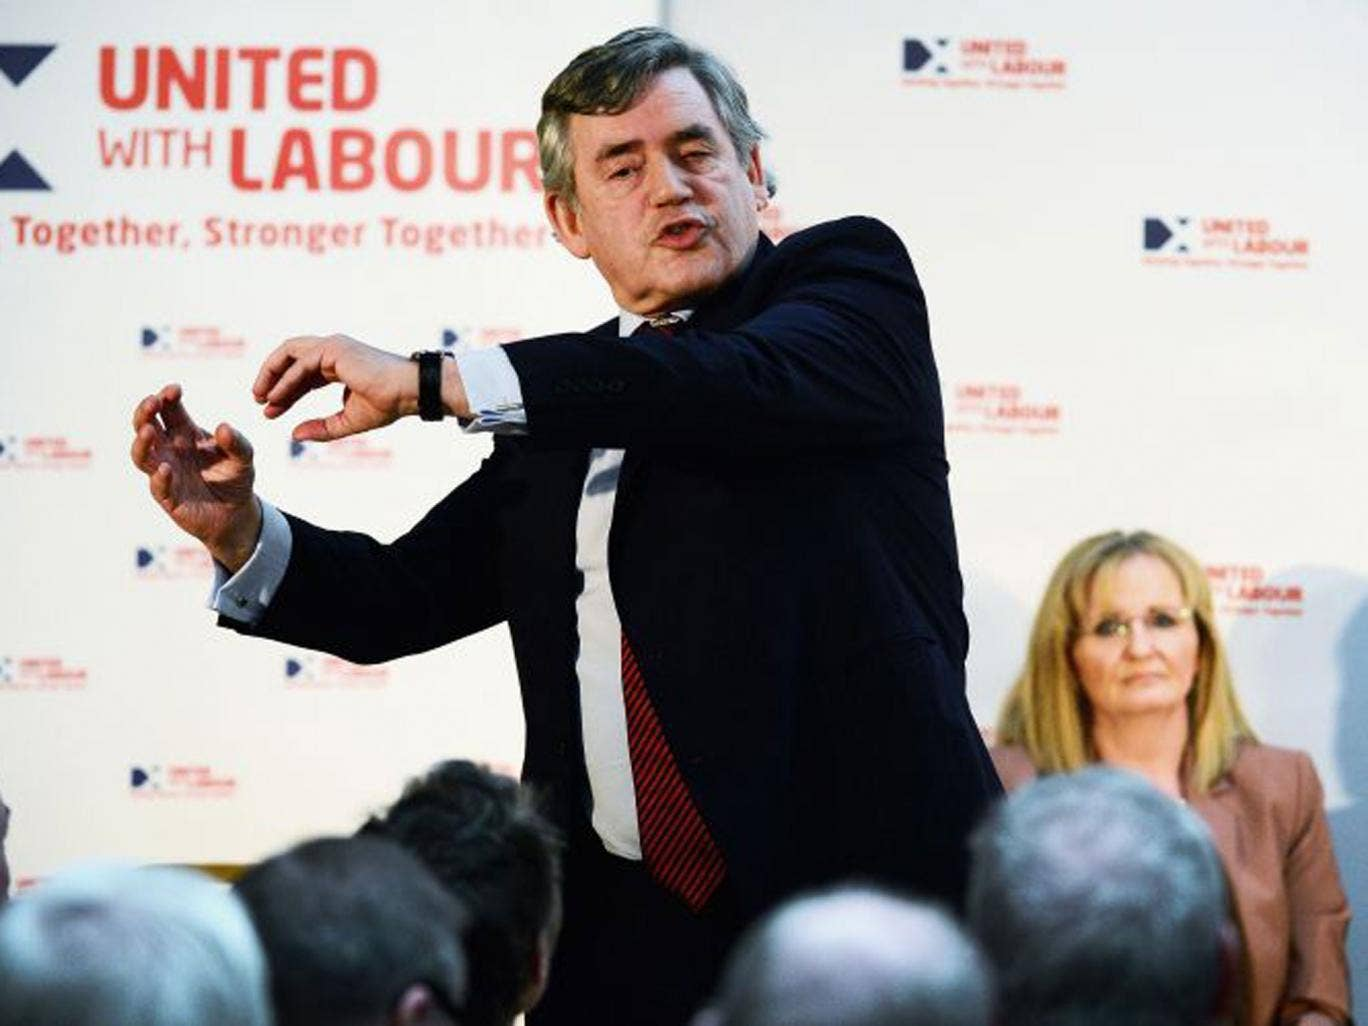 Labour is expected to endorse Gordon Brown's proposals to give the Scottish Parliament greater powers over income tax. The former PM described a plan for a 'partnership of equals'